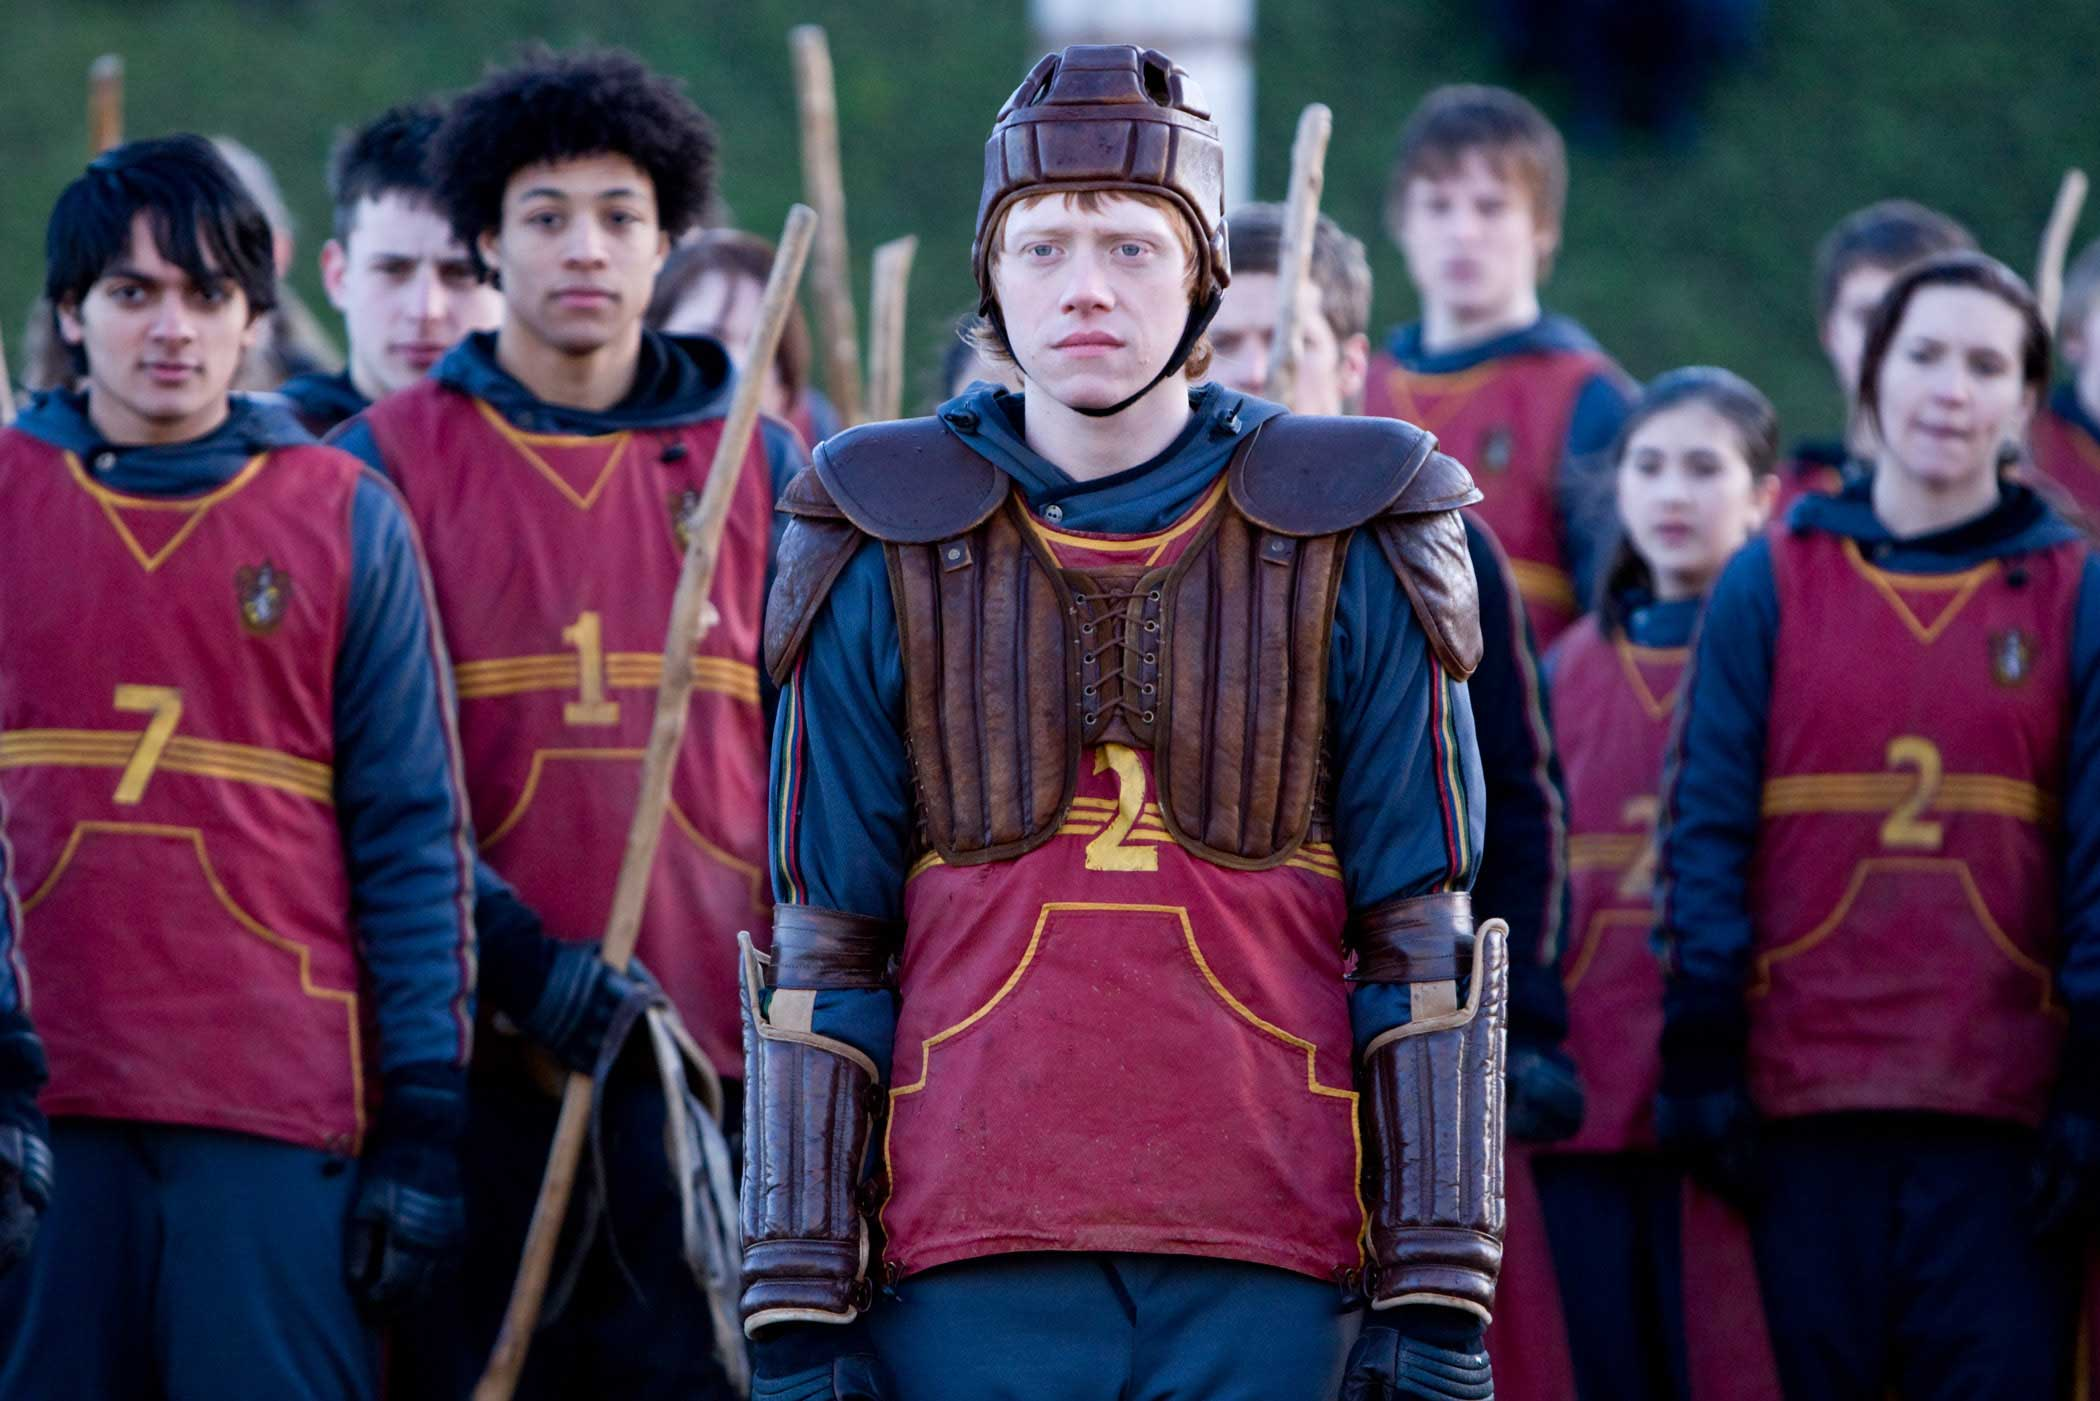 Adult harry potter quidditch sorry, that